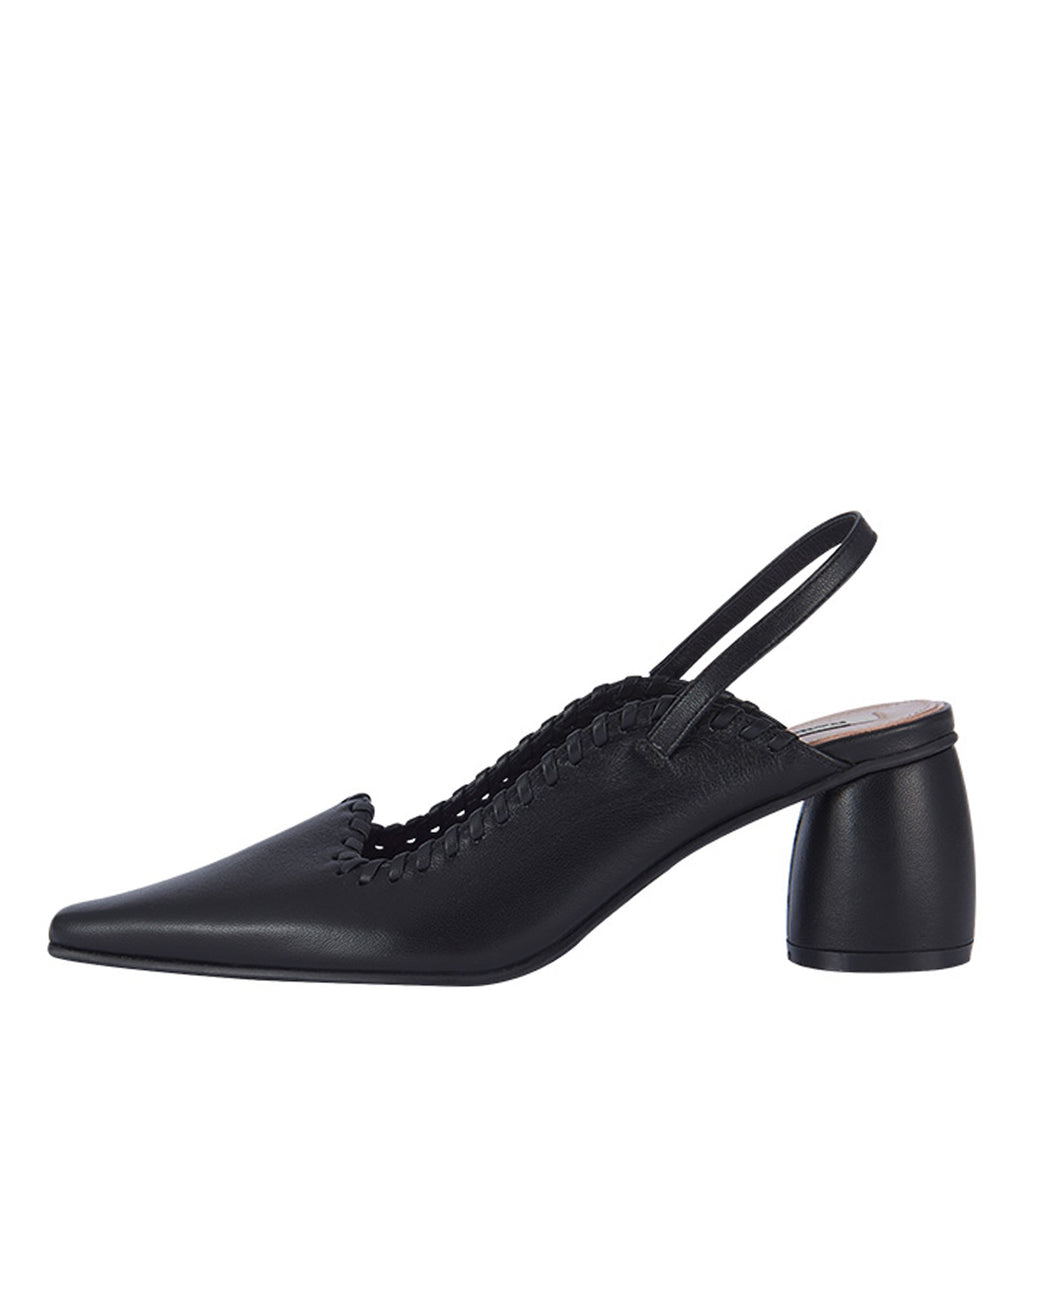 Reike Nen:Curved Middle Slingback – Black,ANOMIE